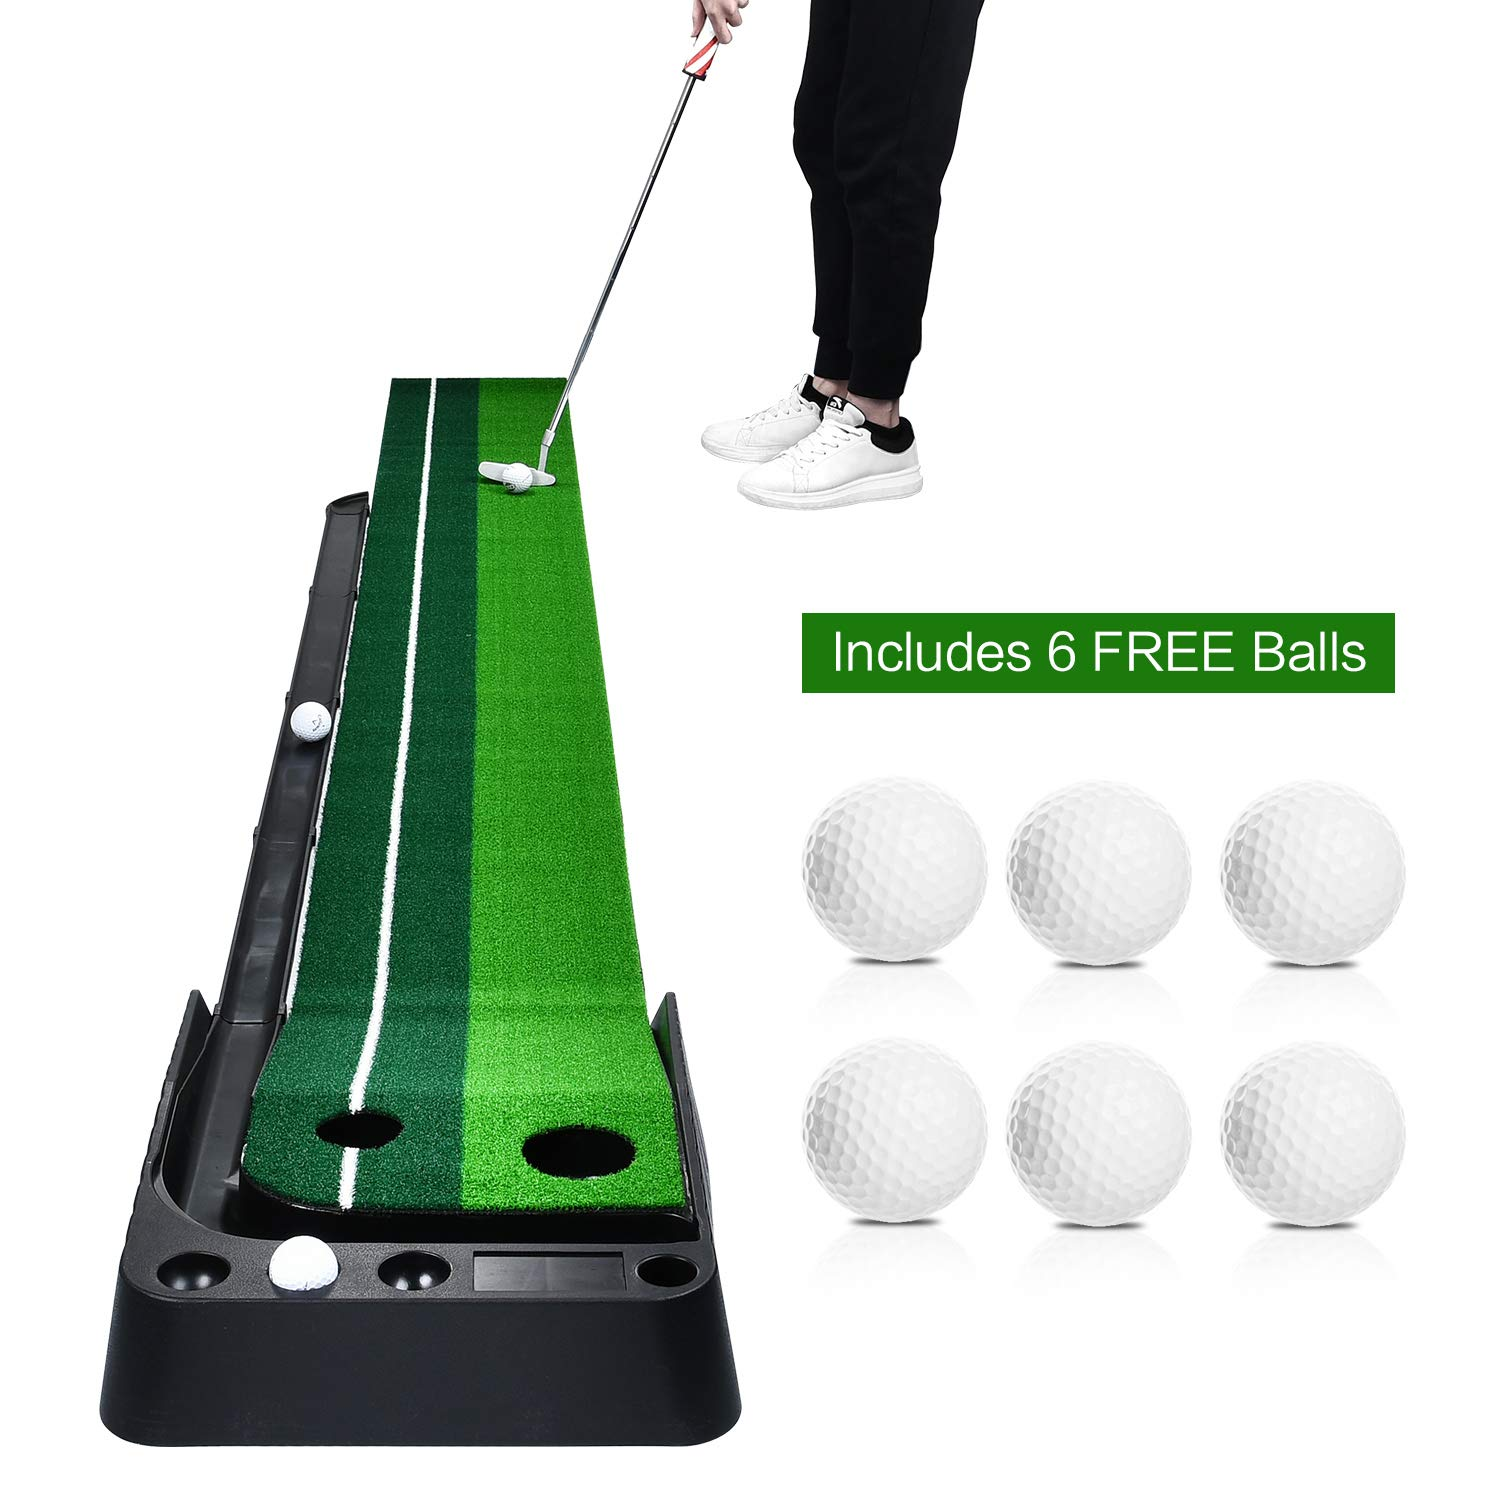 2019 New Quality Champkey Indoor Golf Putting Green 3 Meters with 6 Golf Balls Portable Mat with Auto Ball Return Function2019 New Quality Champkey Indoor Golf Putting Green 3 Meters with 6 Golf Balls Portable Mat with Auto Ball Return Function